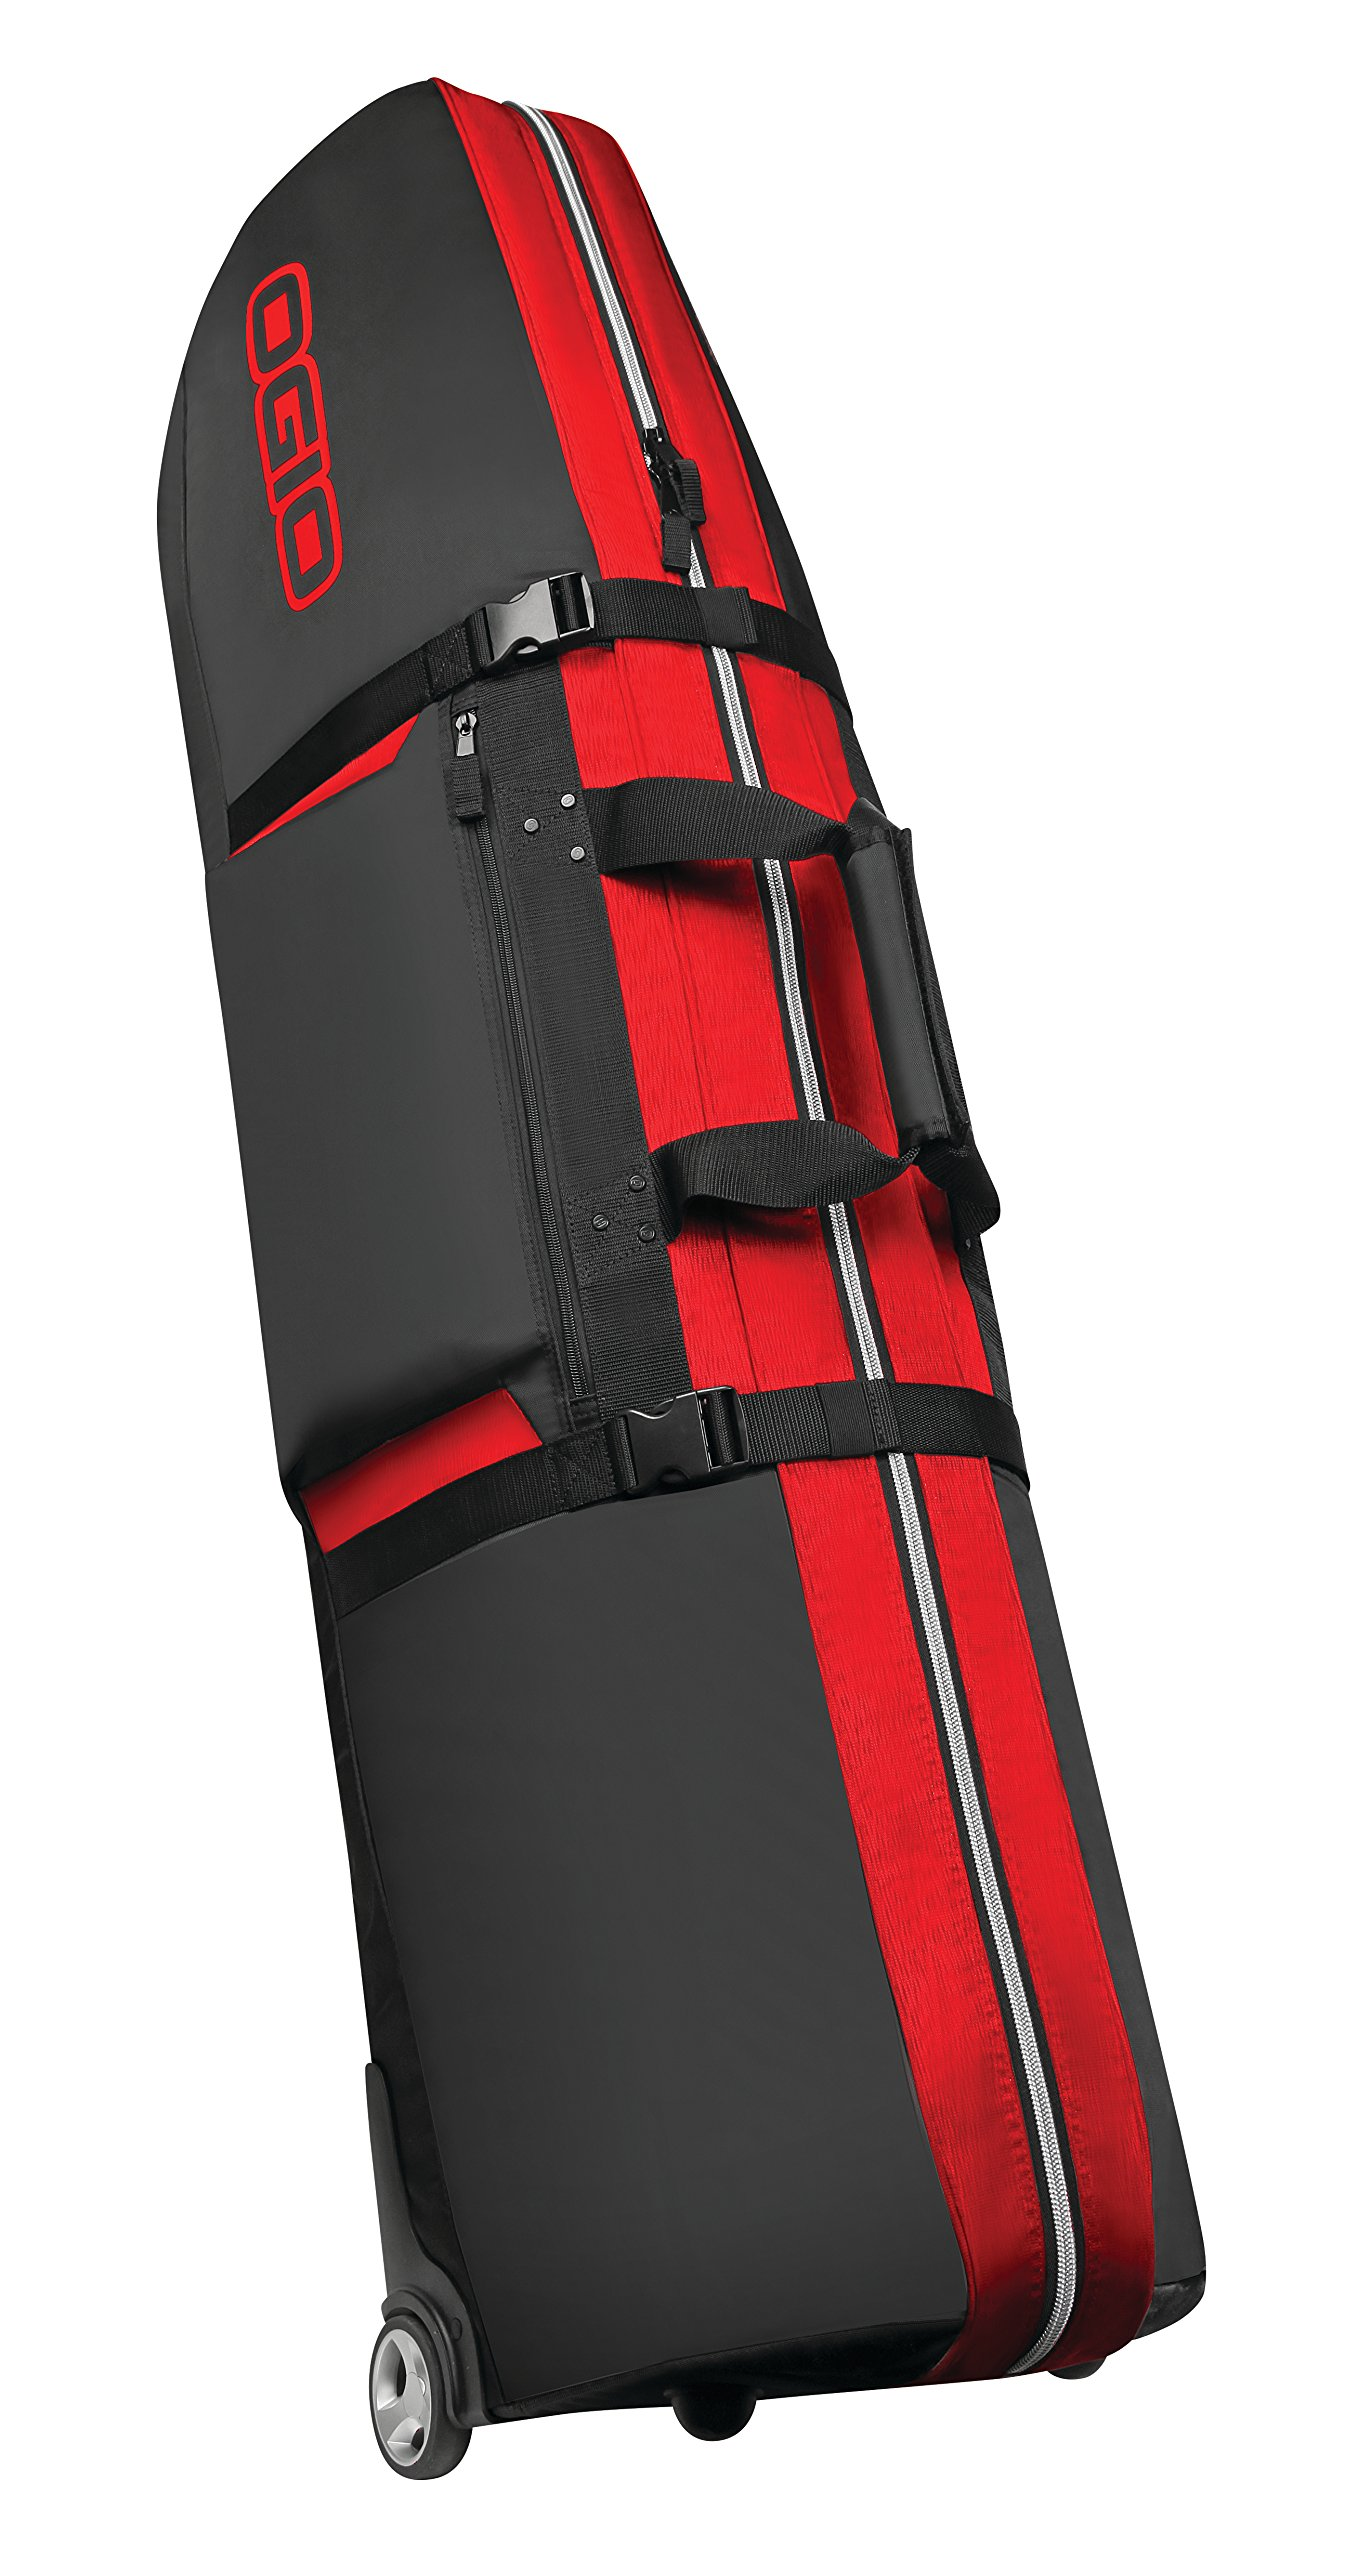 OGIO 2018 Straight Jacket Travel Cover, Red Jungle by OGIO